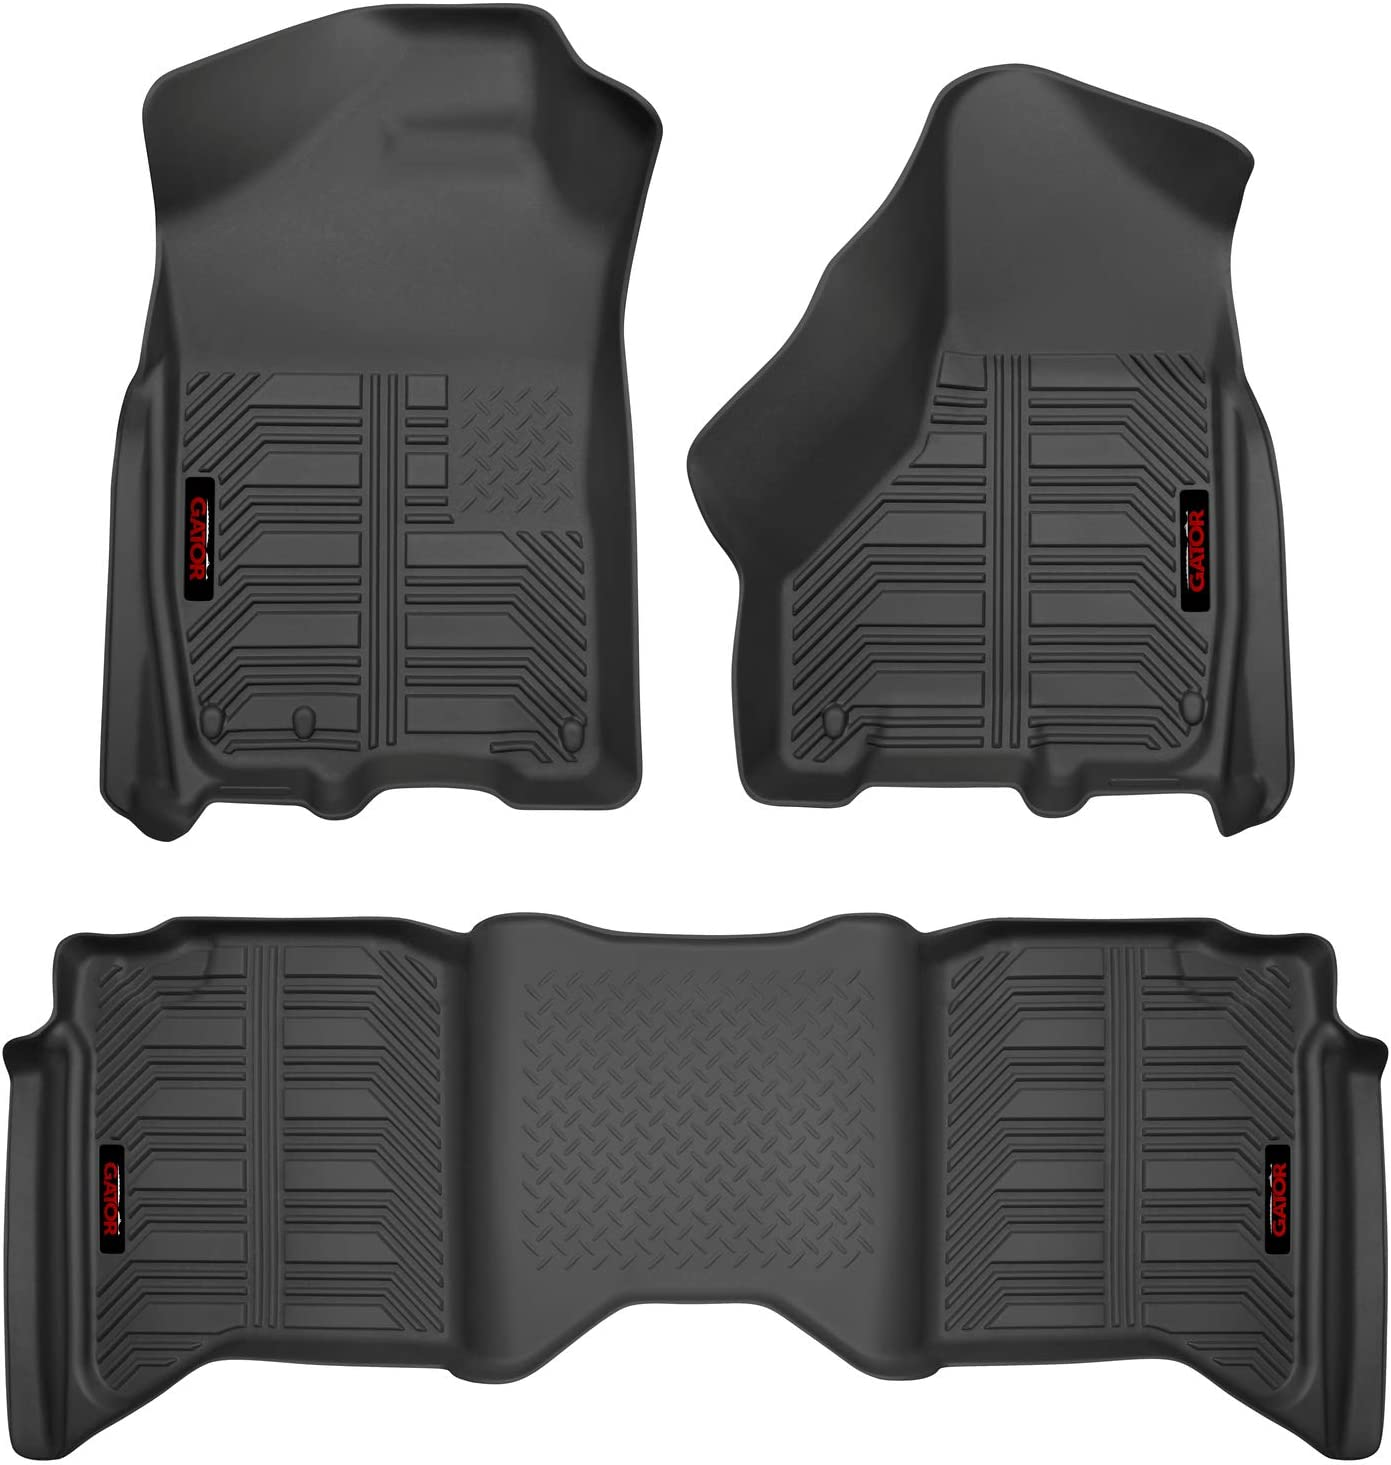 Gator Accessories 79606 Black Front and 2nd Seat Floor Liners Fits 14-19 toyota Tundra Double Cab Combo Set